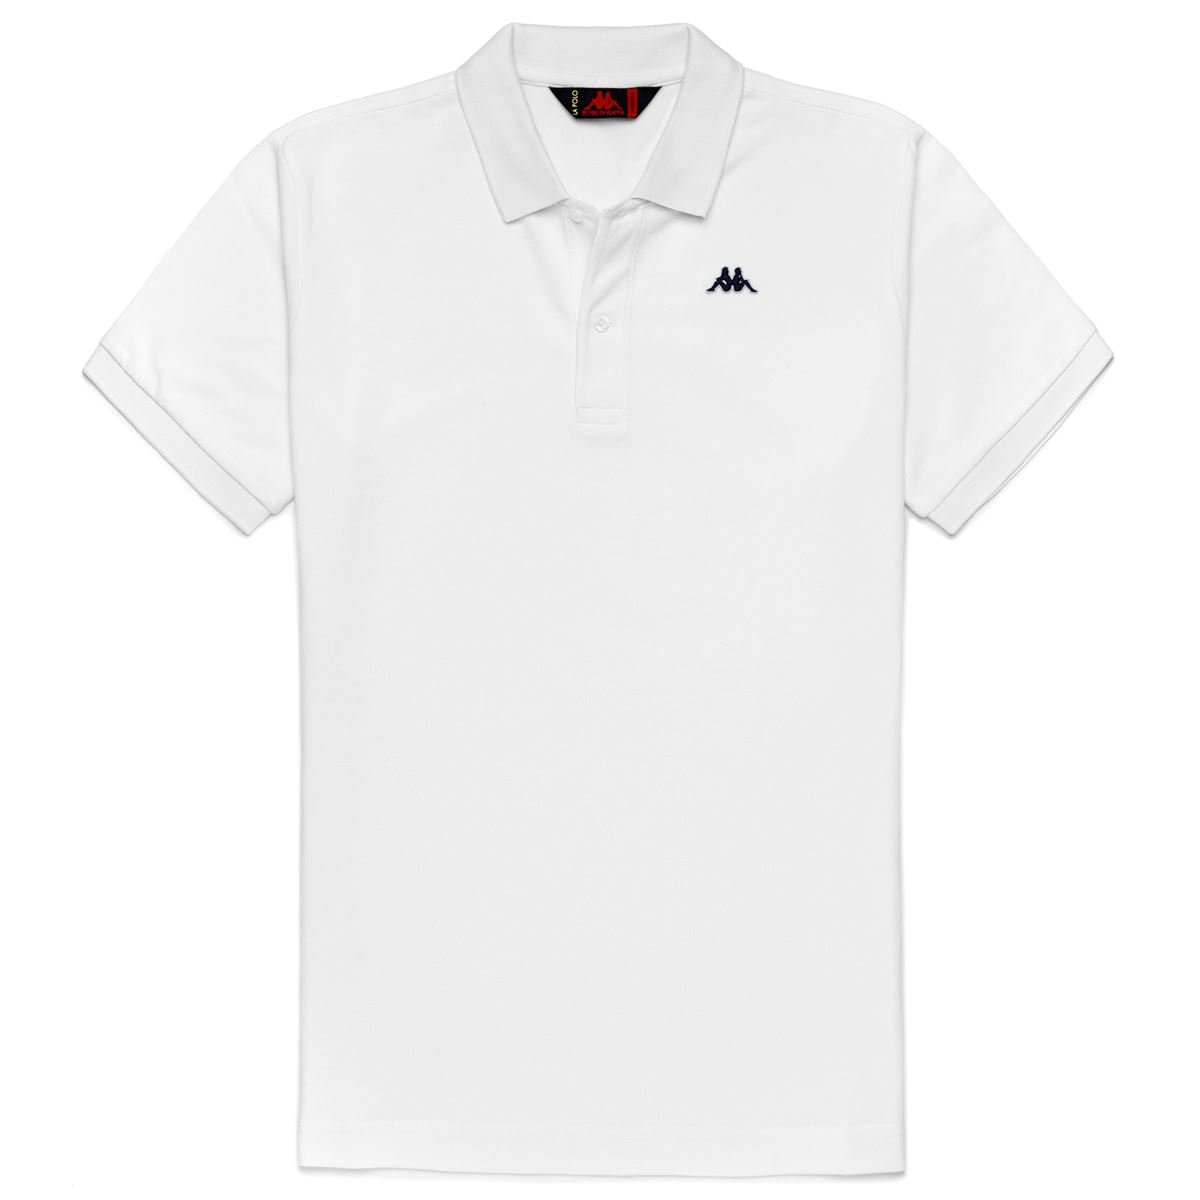 Robe di Kappa LA POLO ROBE DI KAPPA Junior Boy AARAU Classic Polo